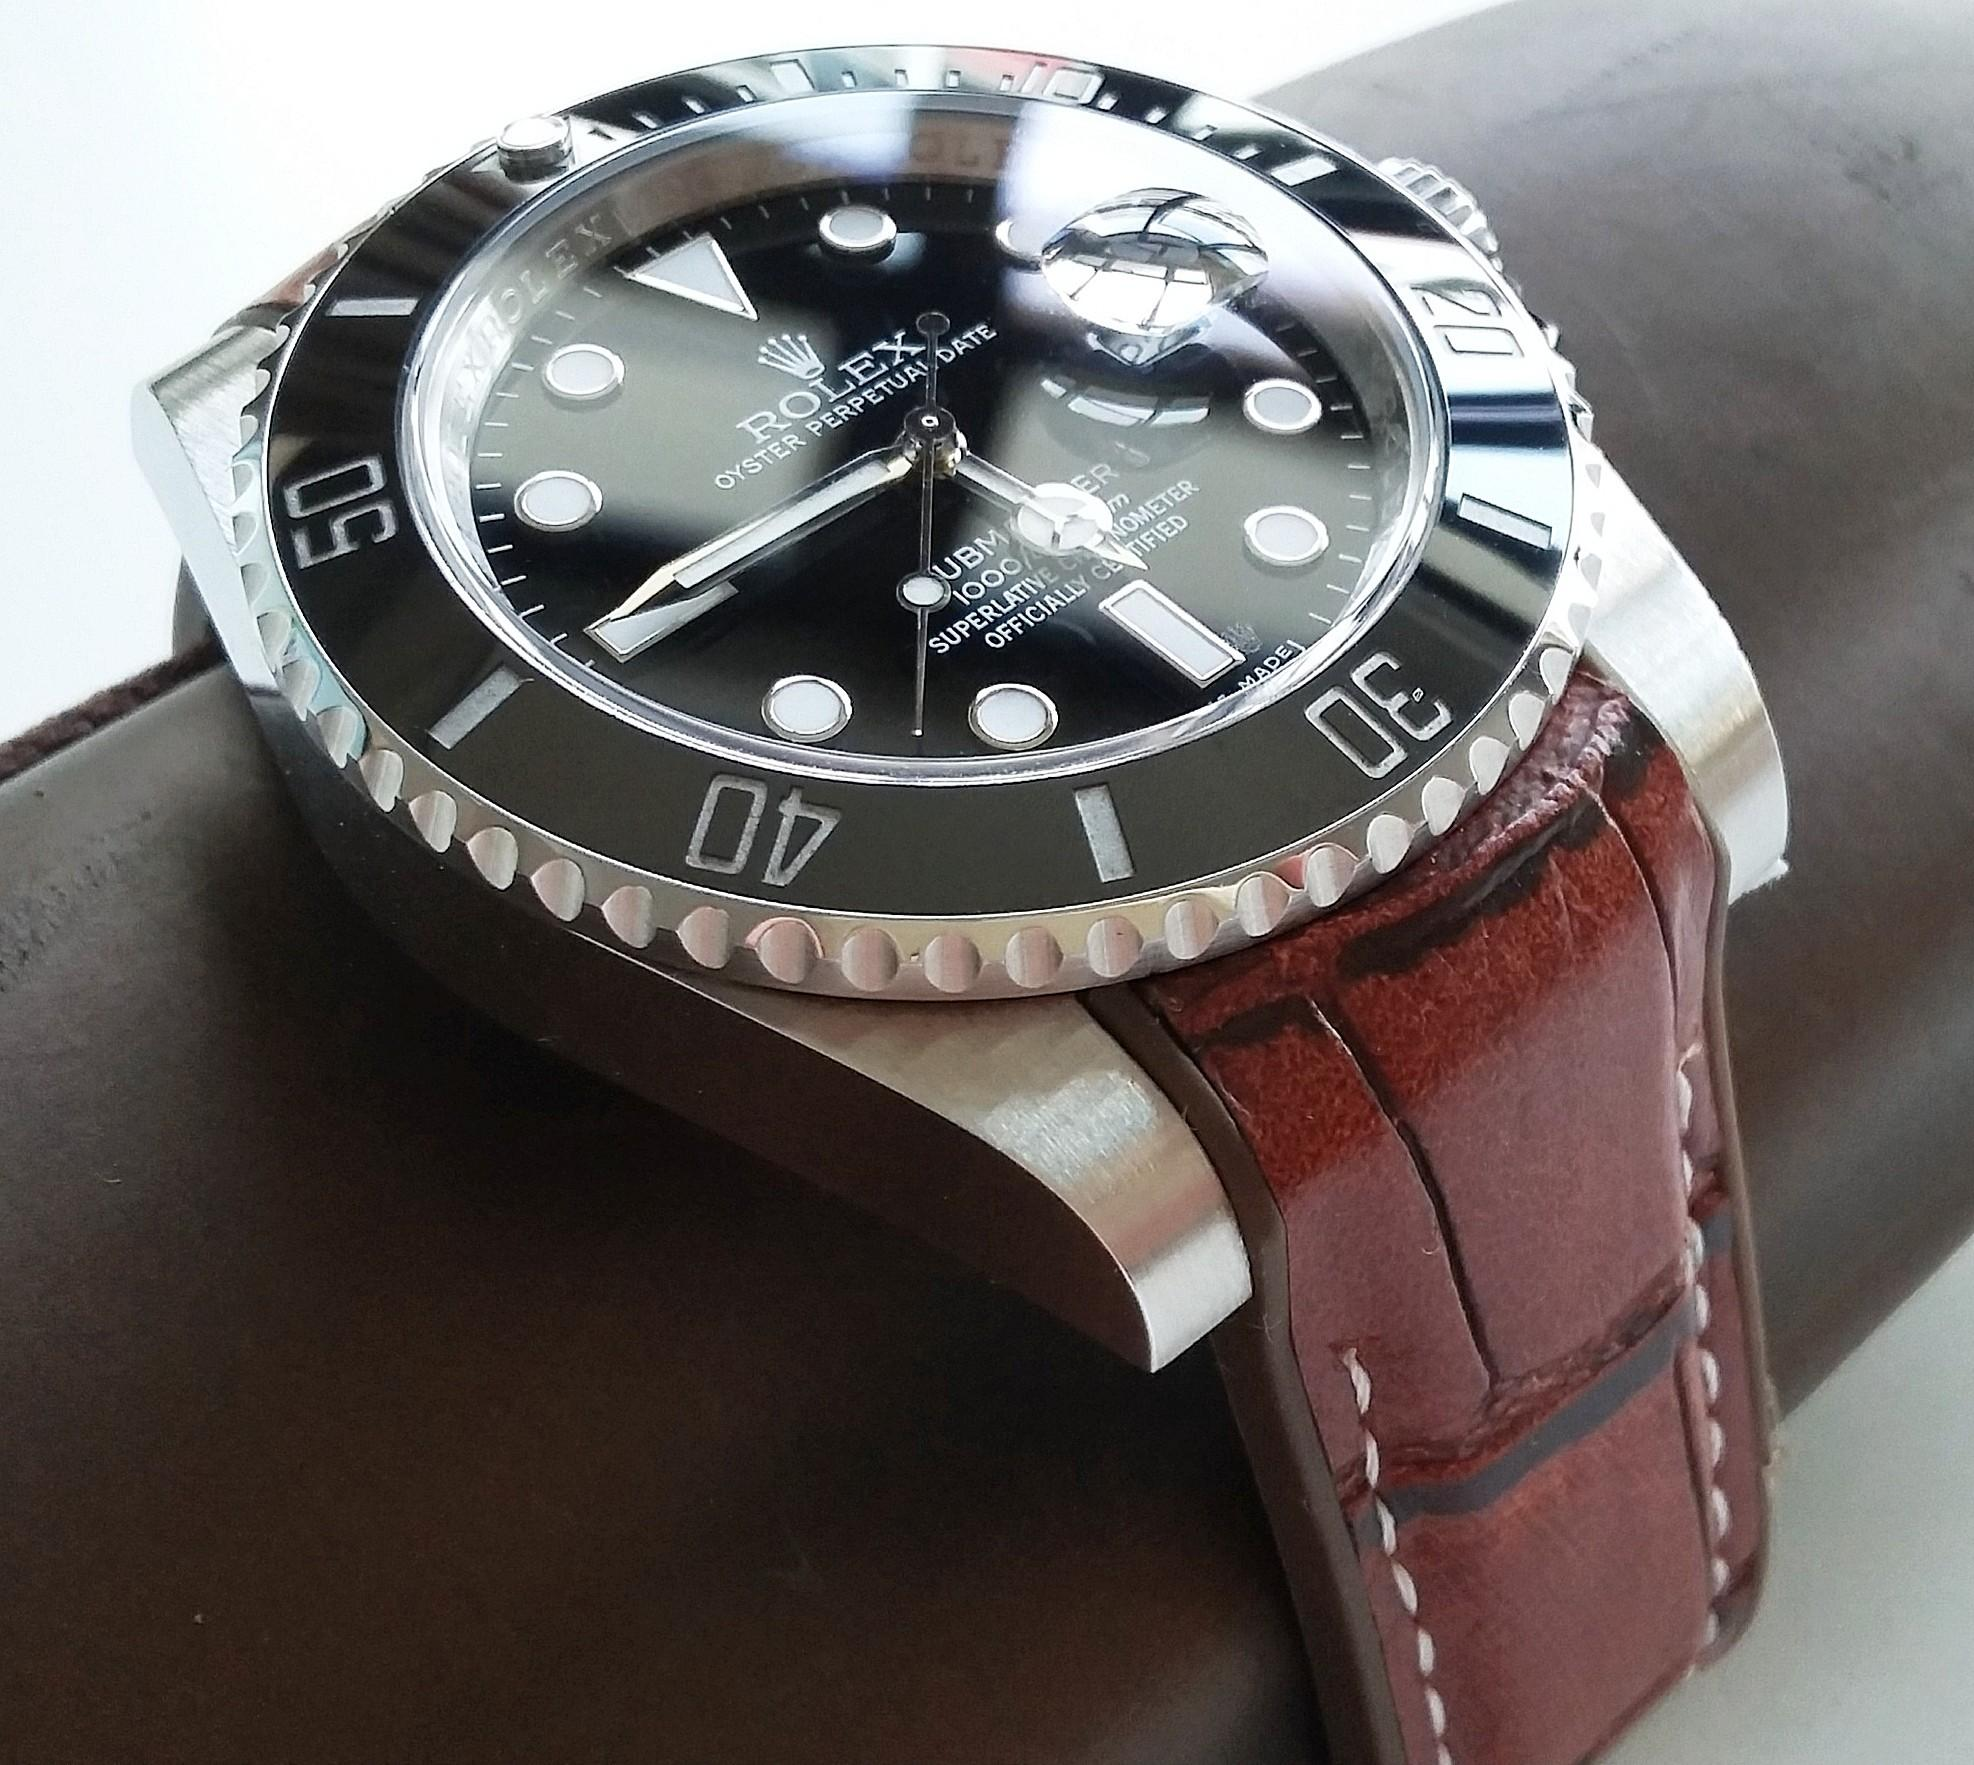 20mm BROWN LEATHER ON RUBBER STRAP WITH STEEL CLASP FOR ROLEX, OMEGA, TUDOR,  SEIKO,  (PRICE INCLUDES INSTALLATION)